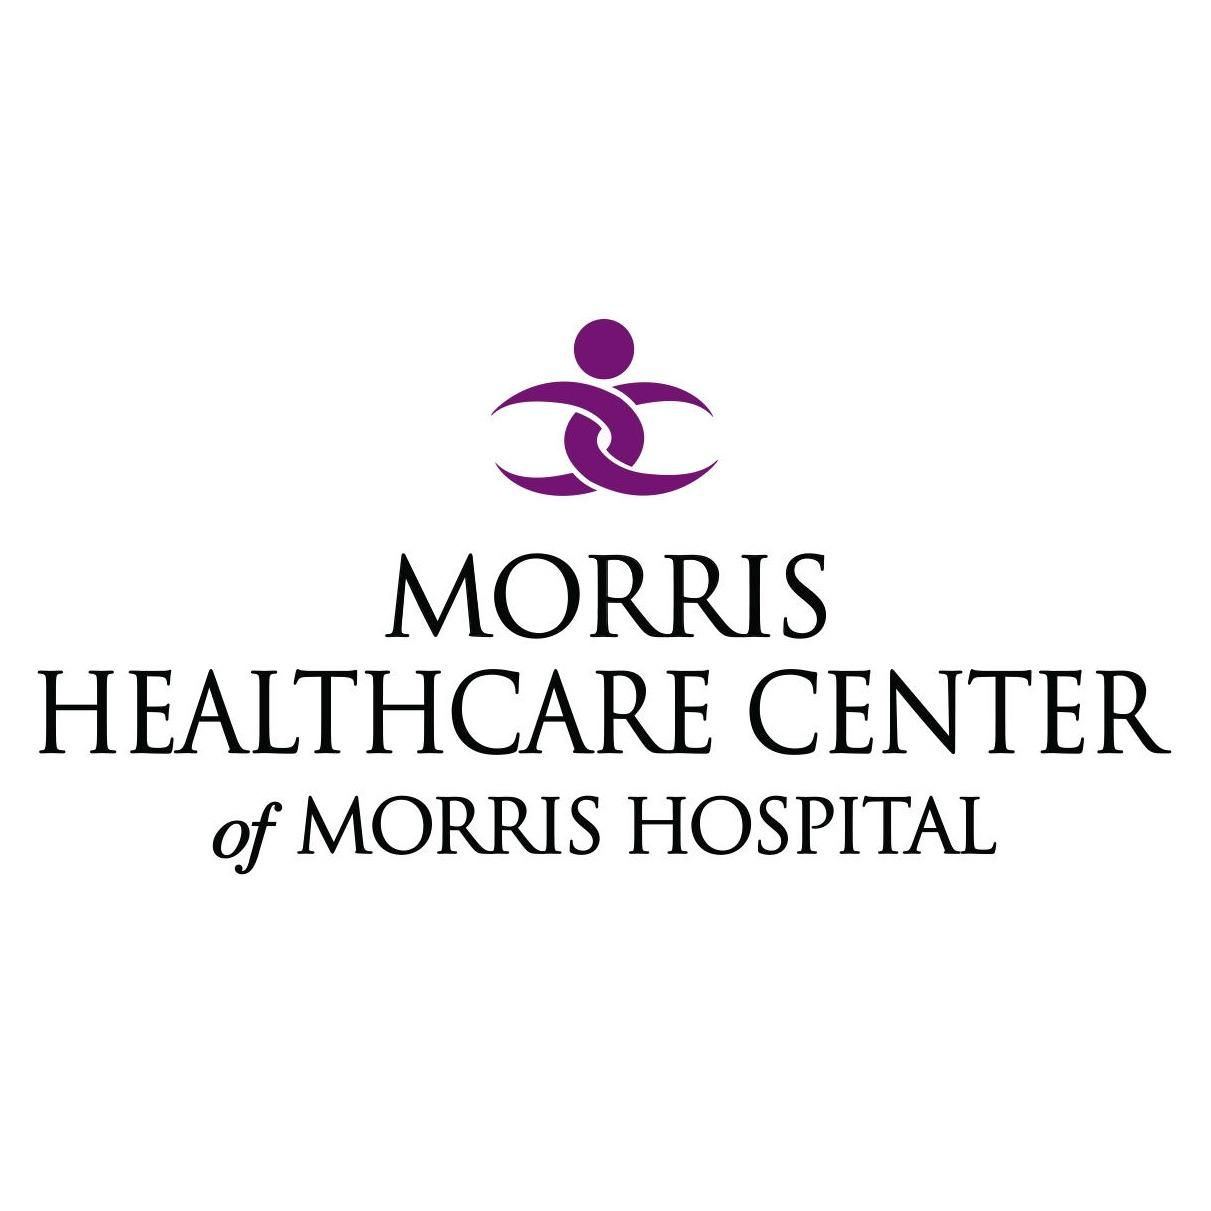 Morris Healthcare Center of Morris Hospital - BTC